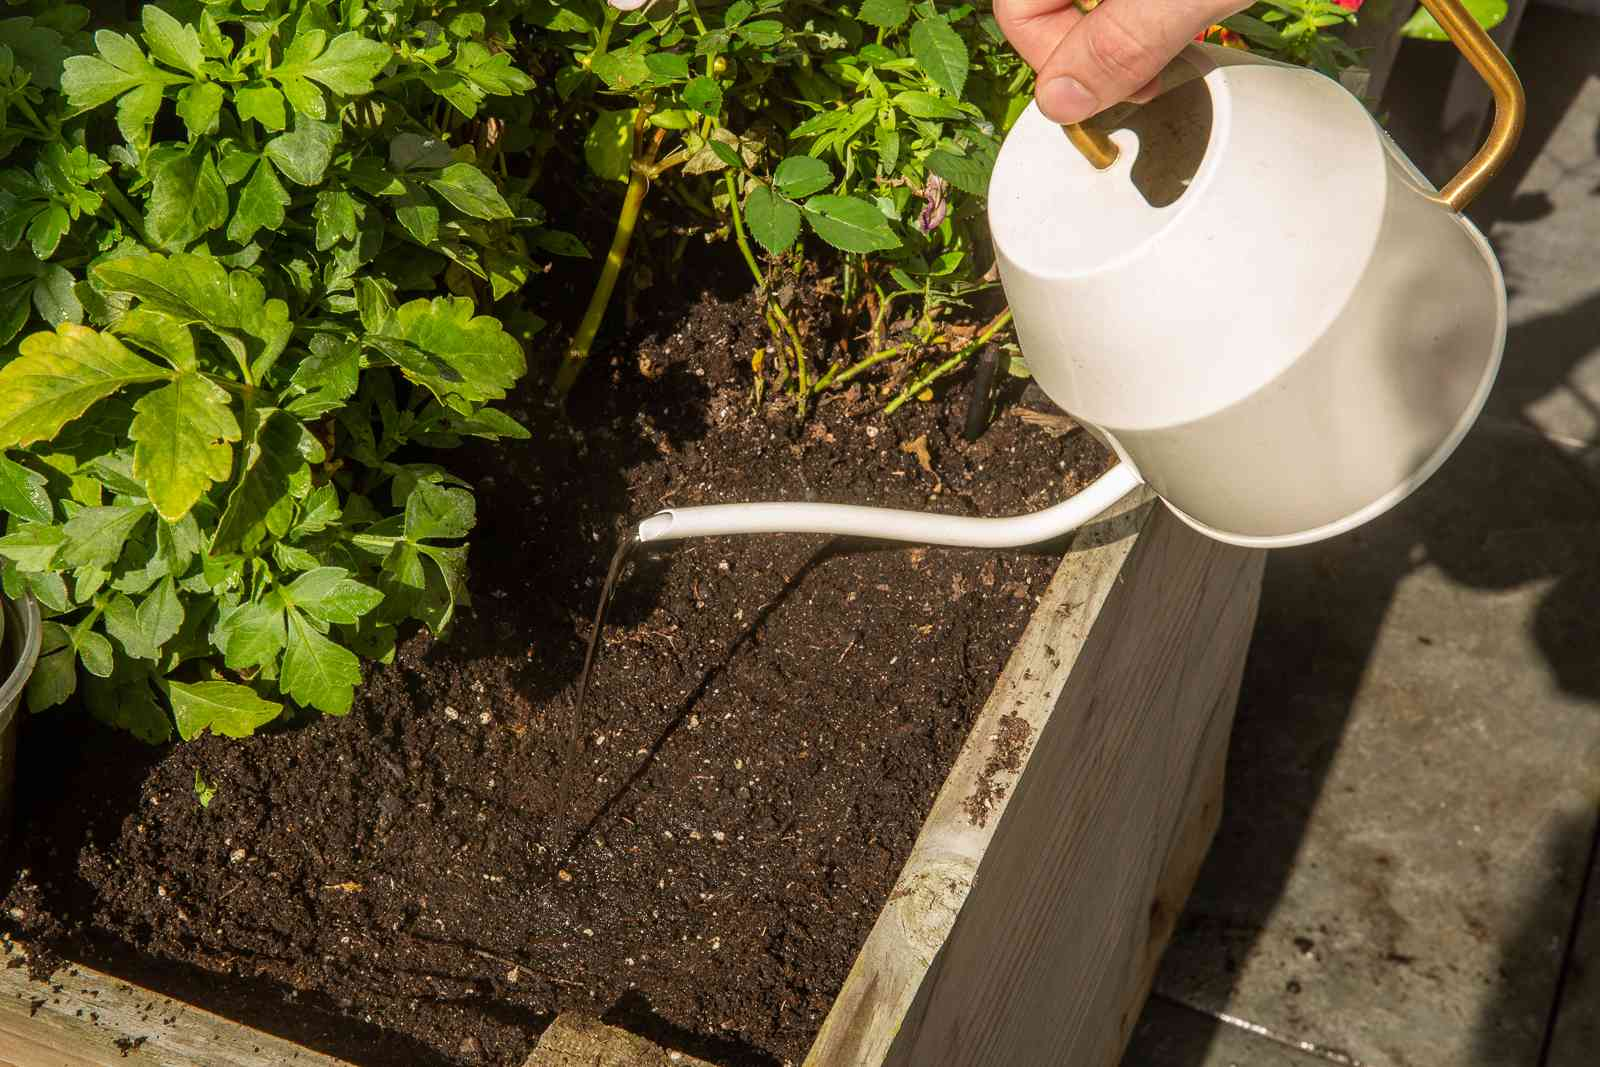 White watering can pouring water into raised garden bed with summer bulbs